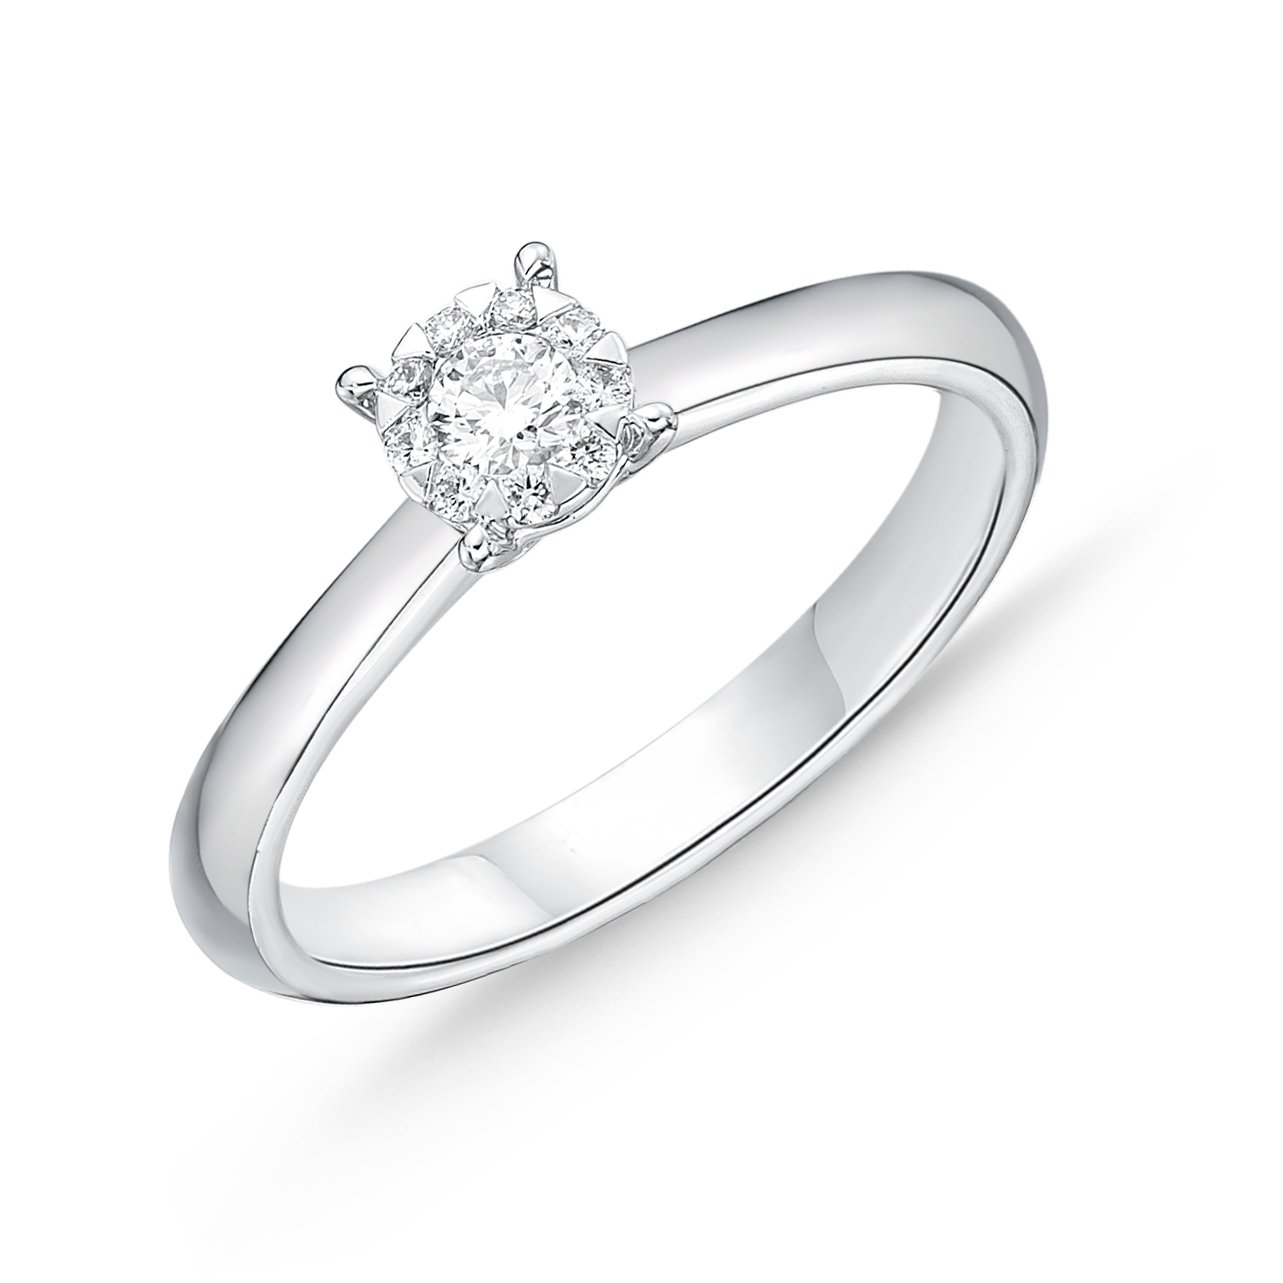 Memoire 18ct White Gold 1/5 Carat Diamond Bouquet Solitaire Ring